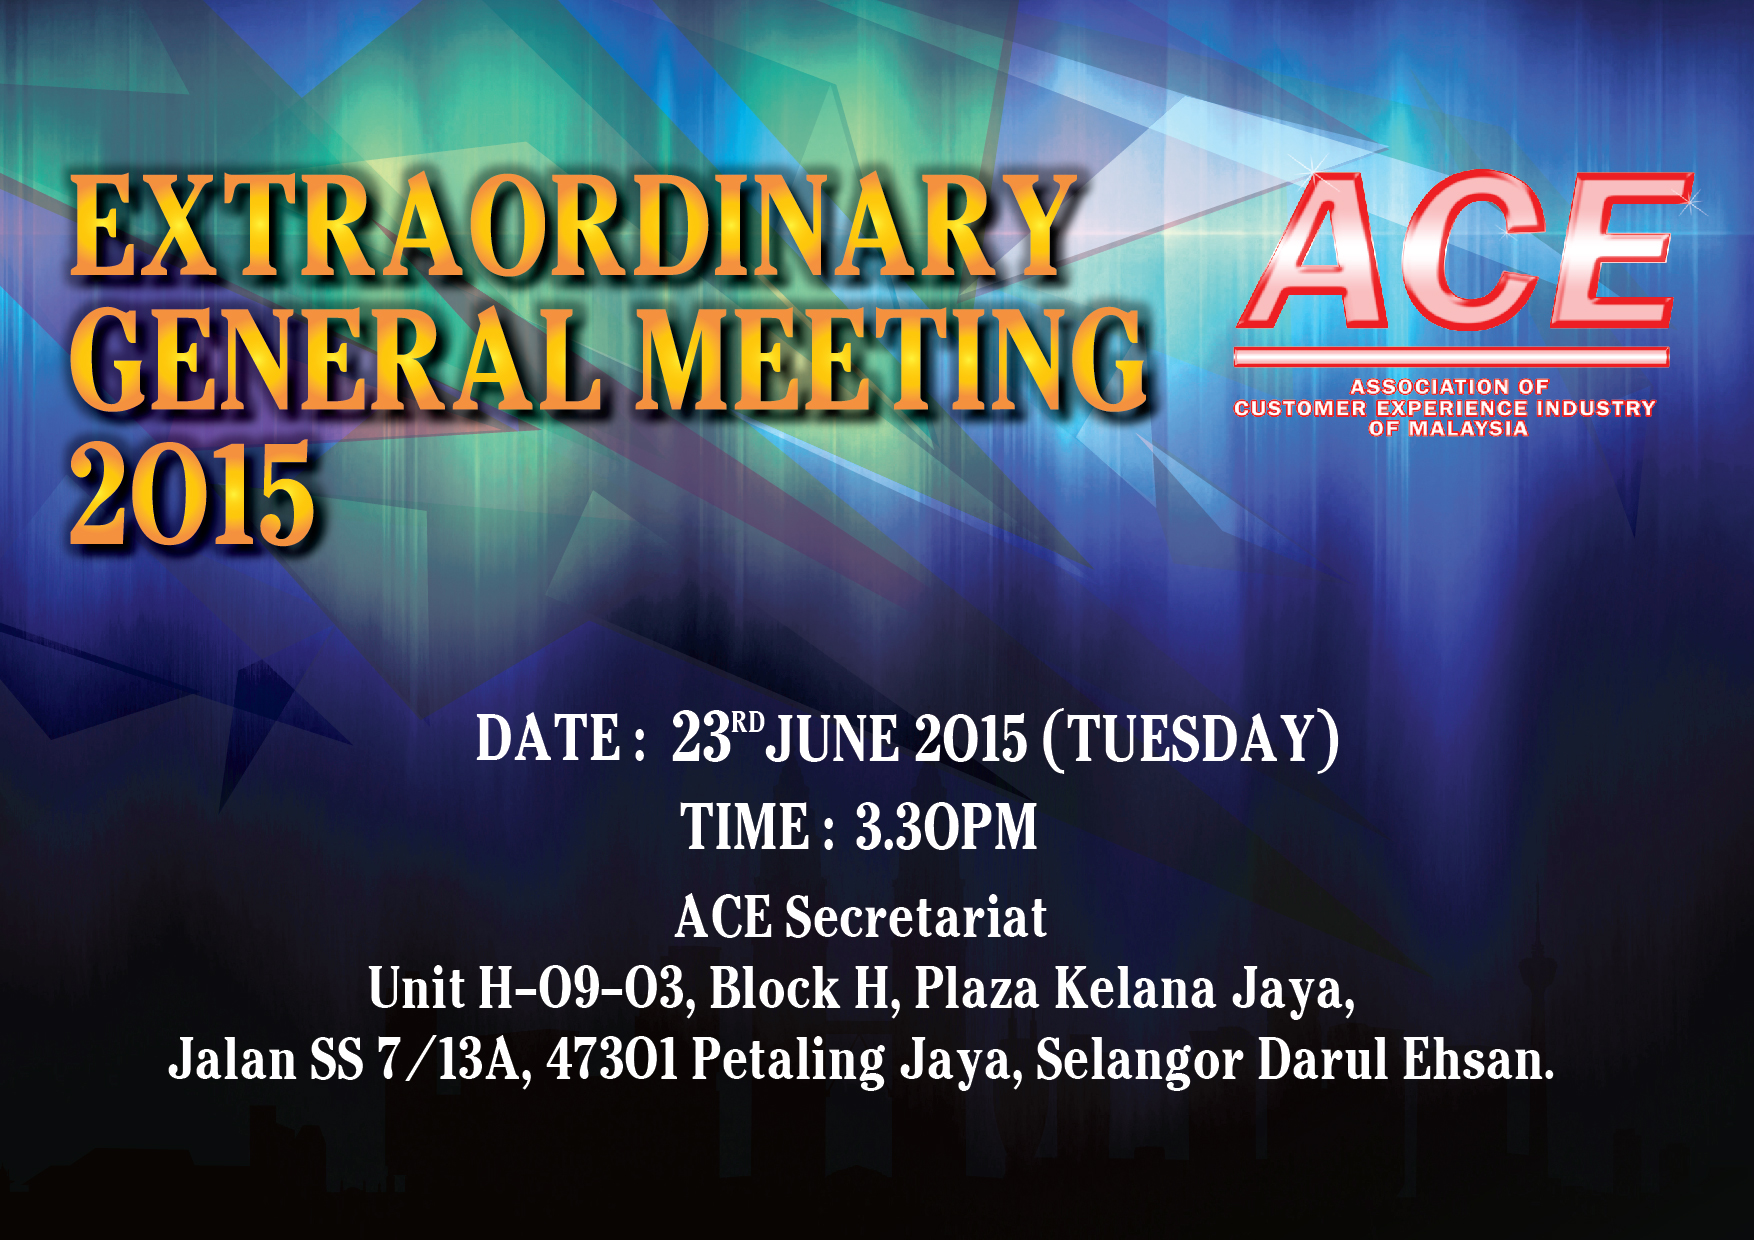 EXTRAORDINARY GENERAL MEETING 2015